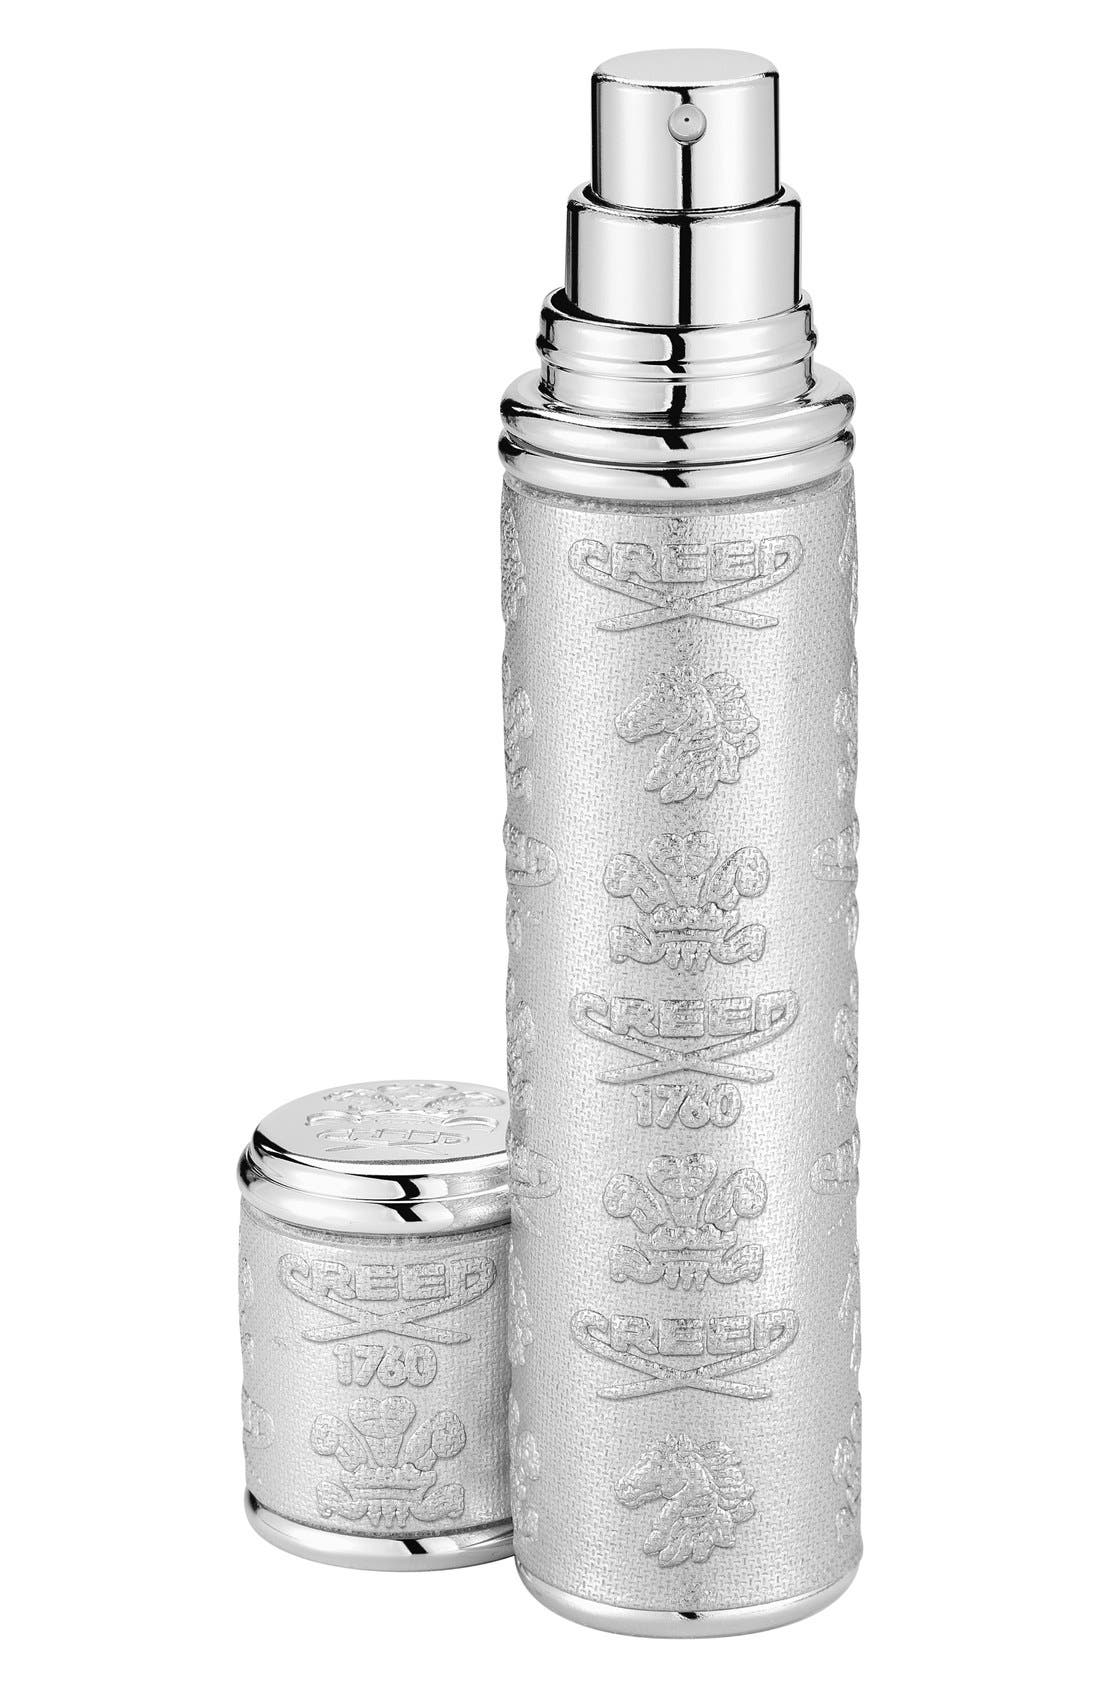 Creed Silver Leather with Silver Trim Pocket Atomizer